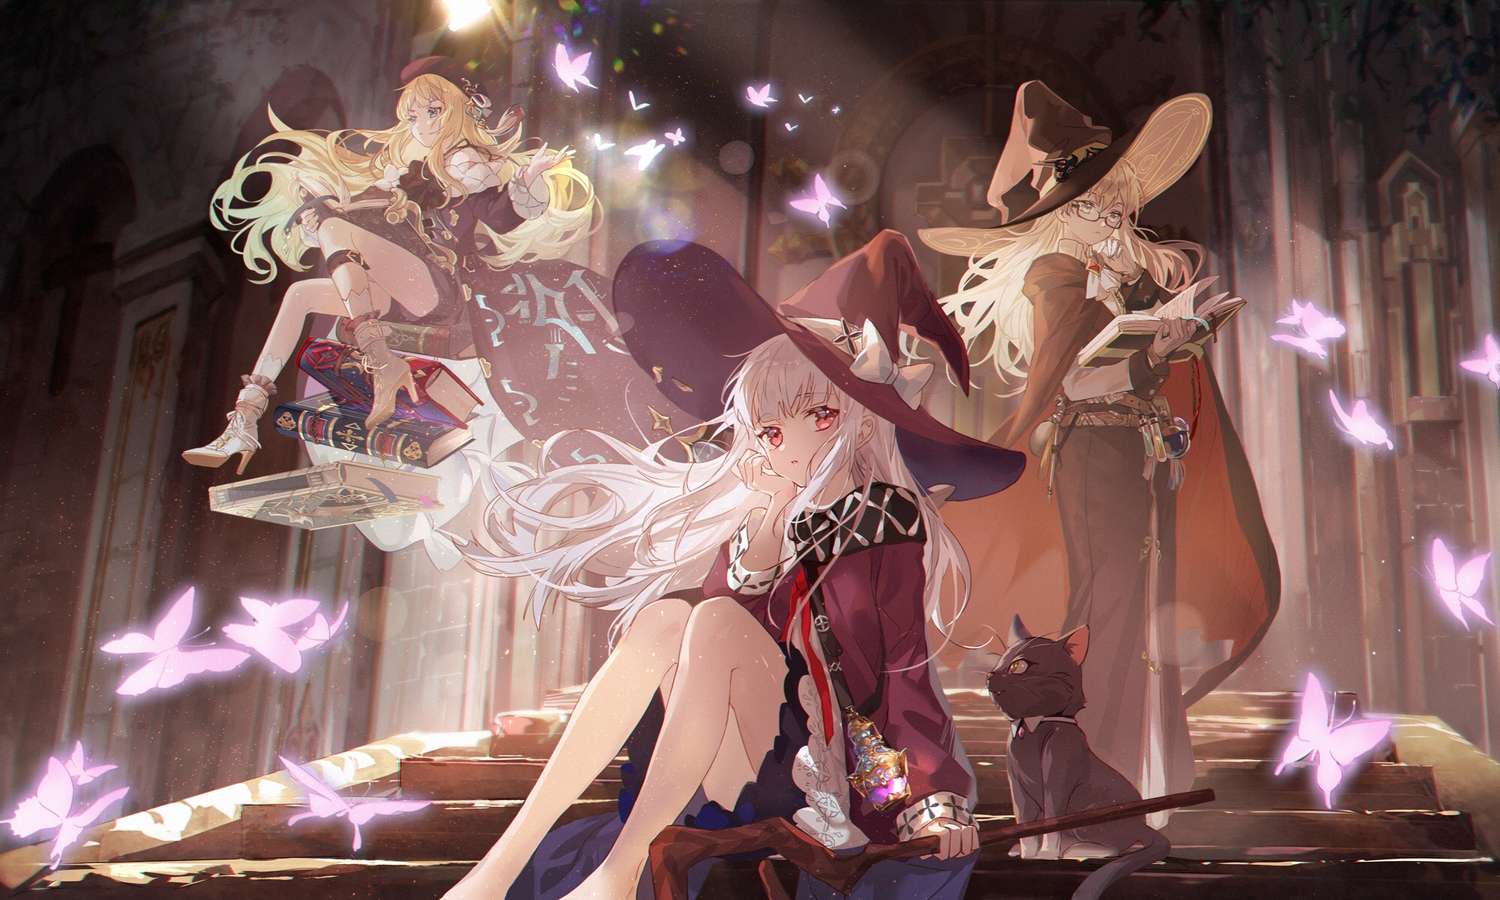 animal blonde_hair book butterfly cat dress garter_belt glasses hat kanose long_hair red_eyes staff stairs white_hair witch witch_hat